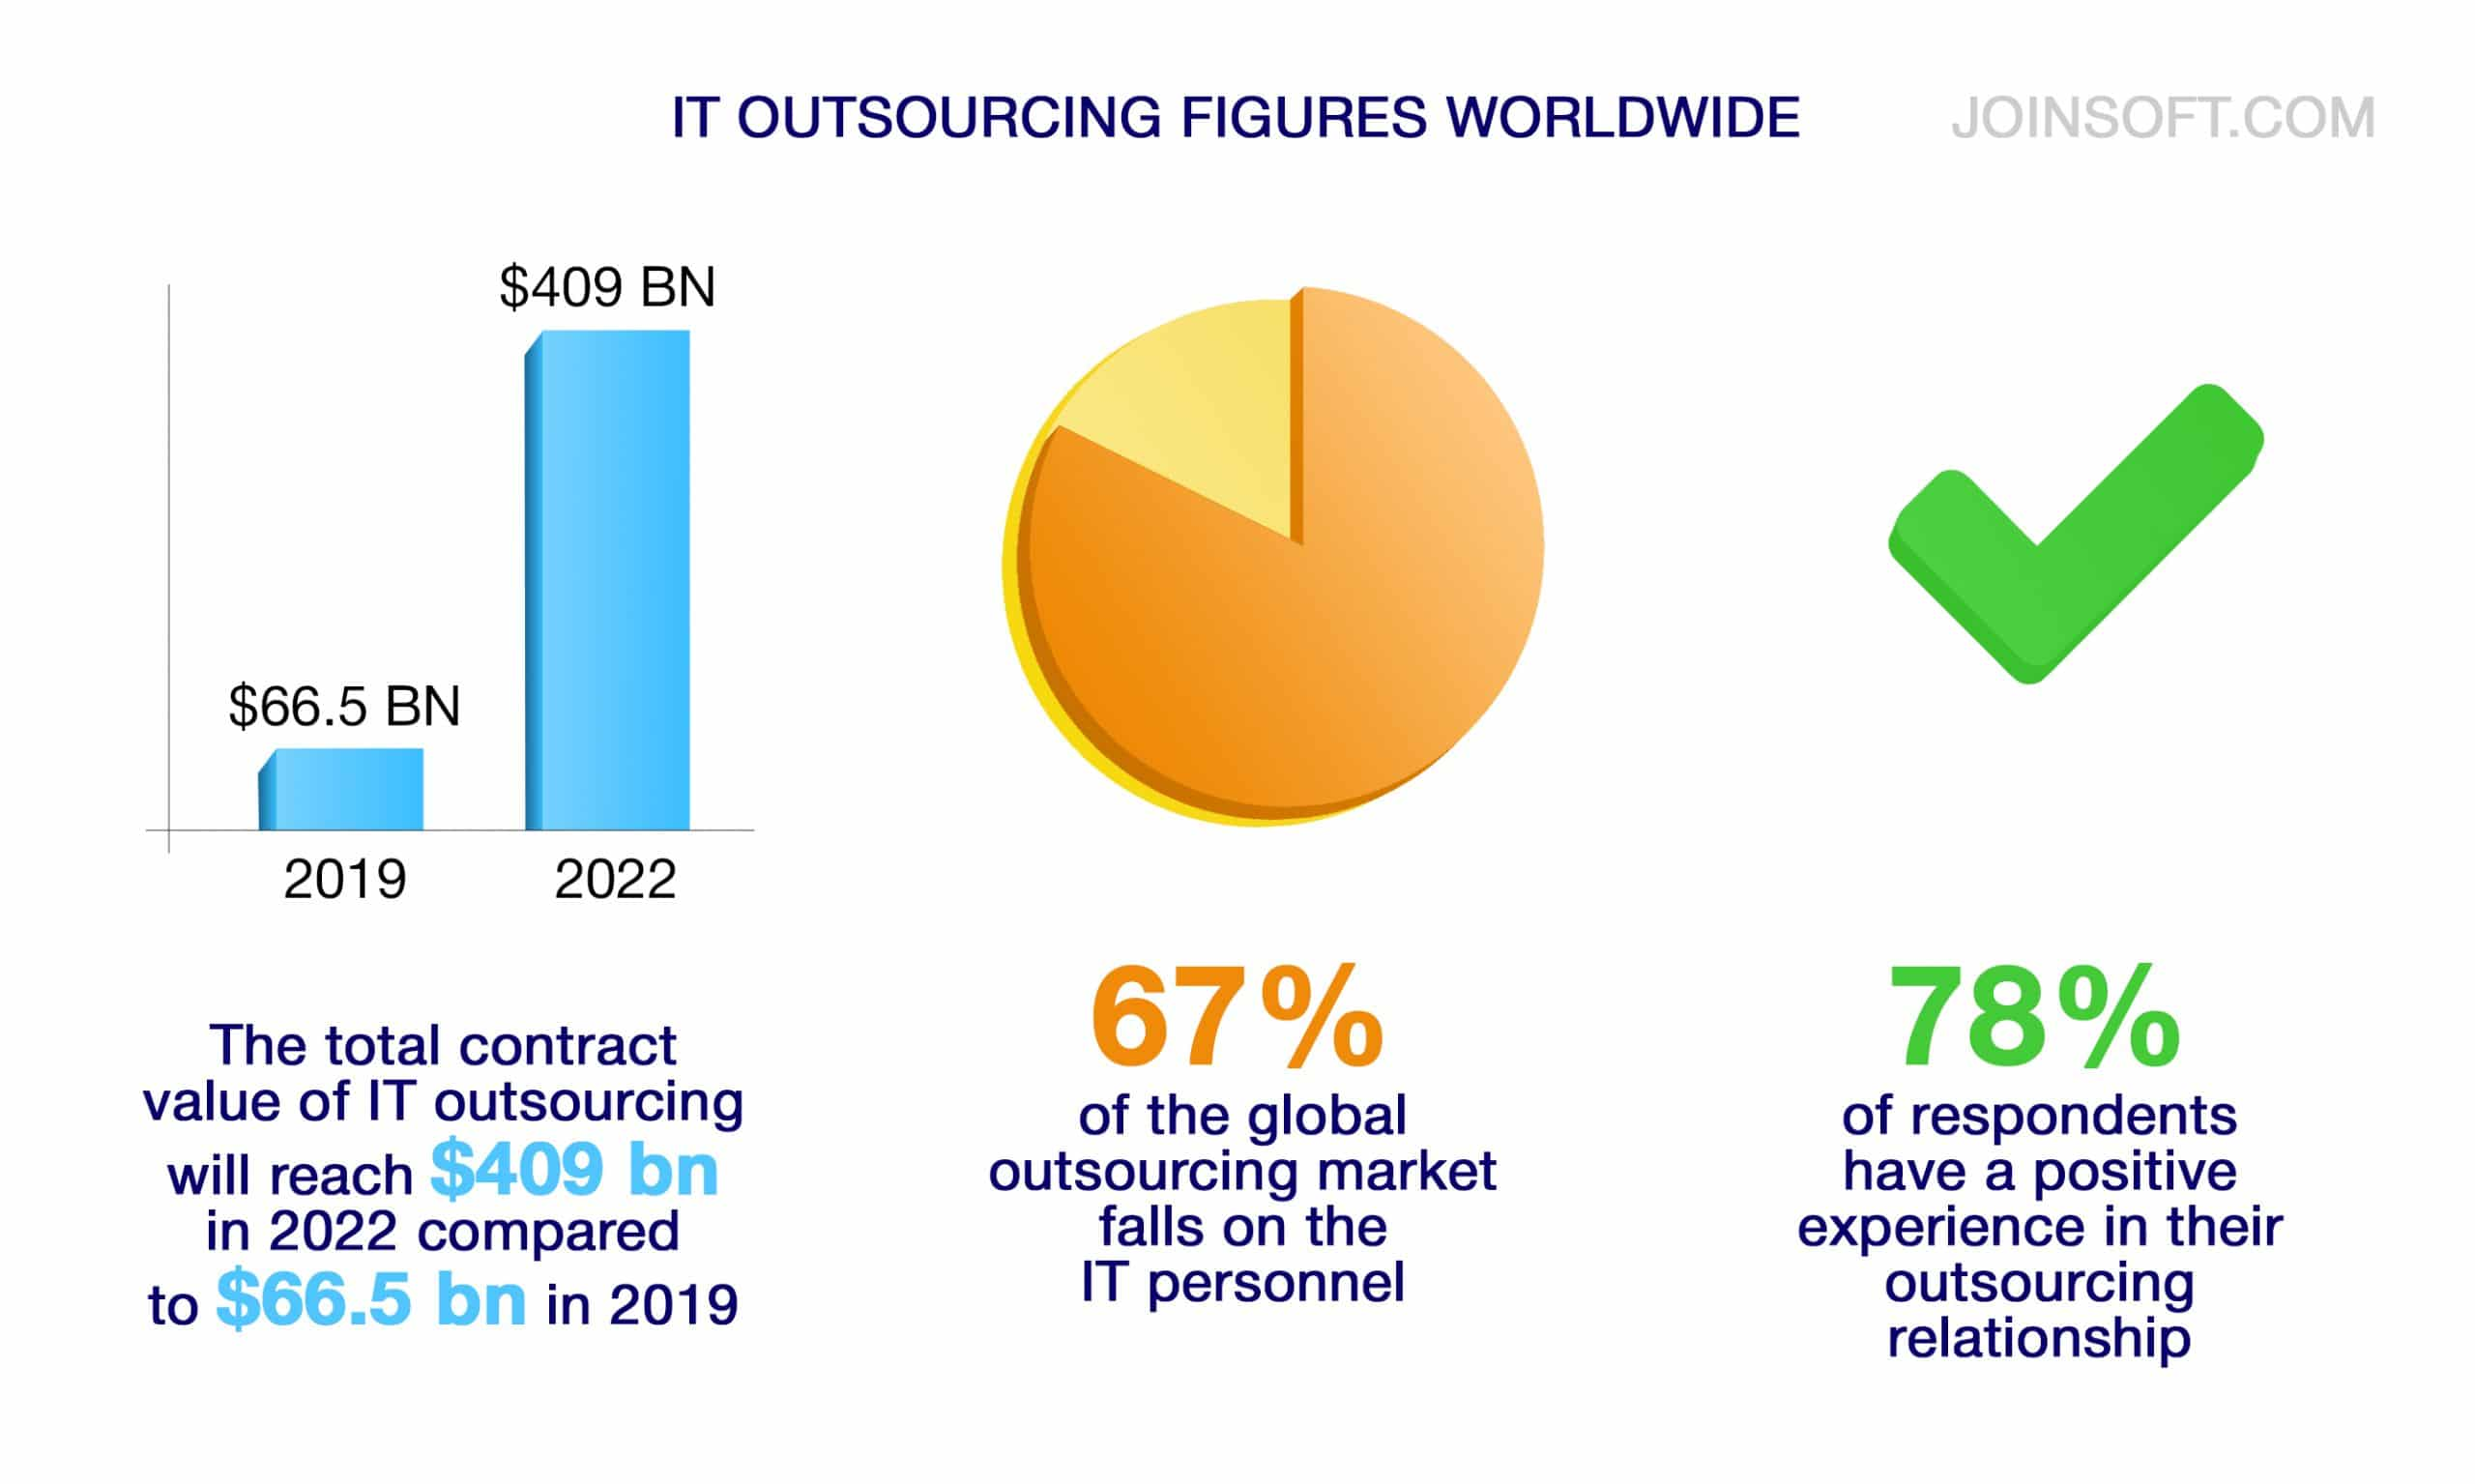 IT outsourcing figures worldwide